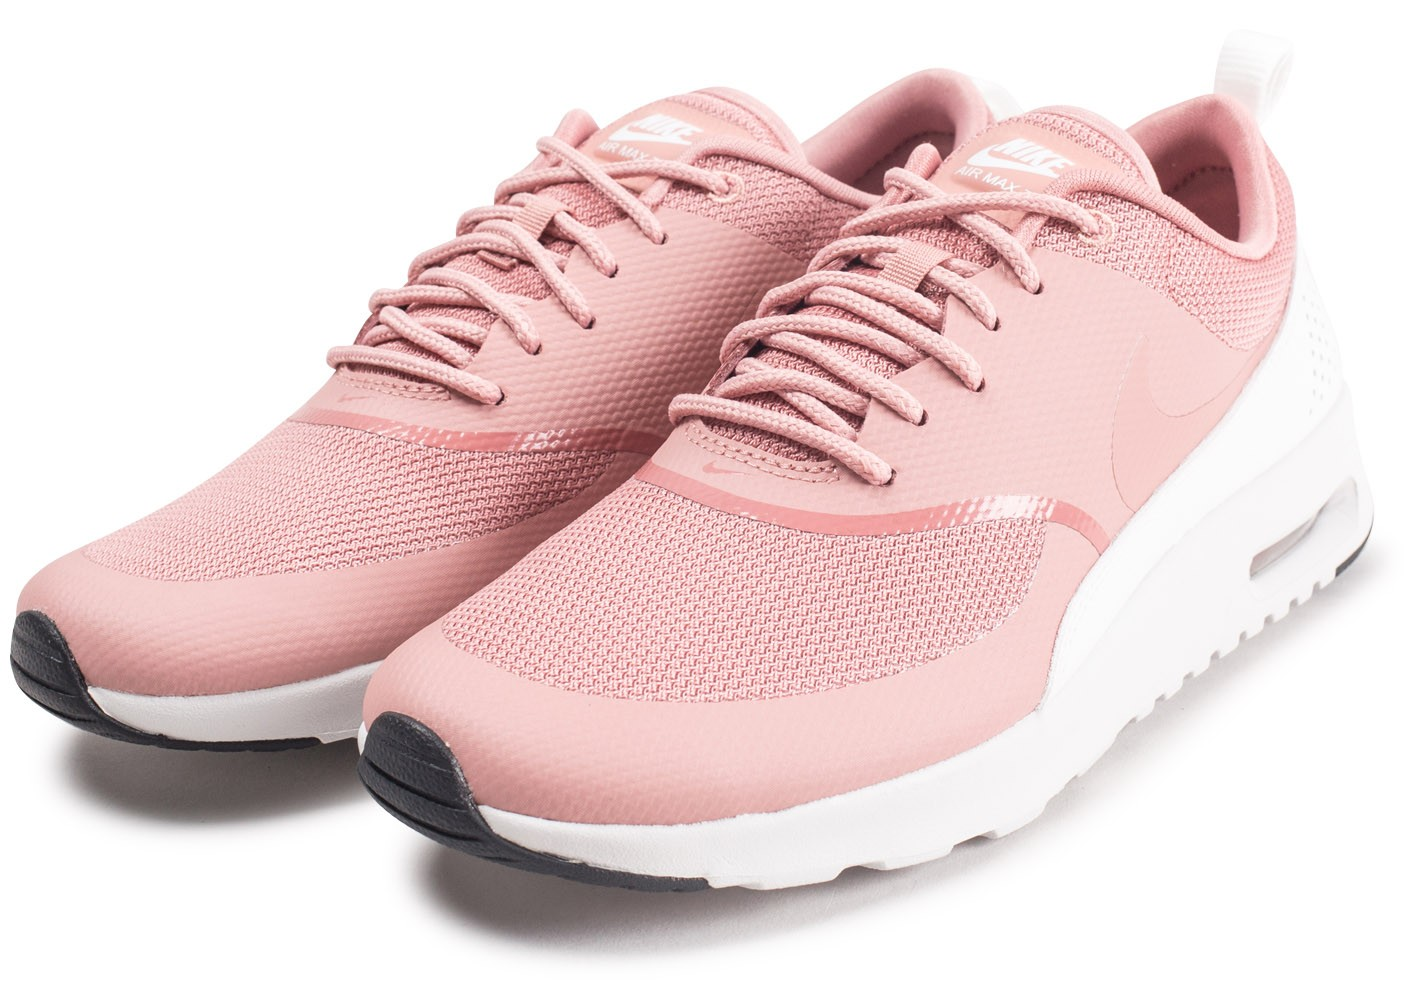 Nike Air Max Thea rose et blanche femme Chaussures Prix